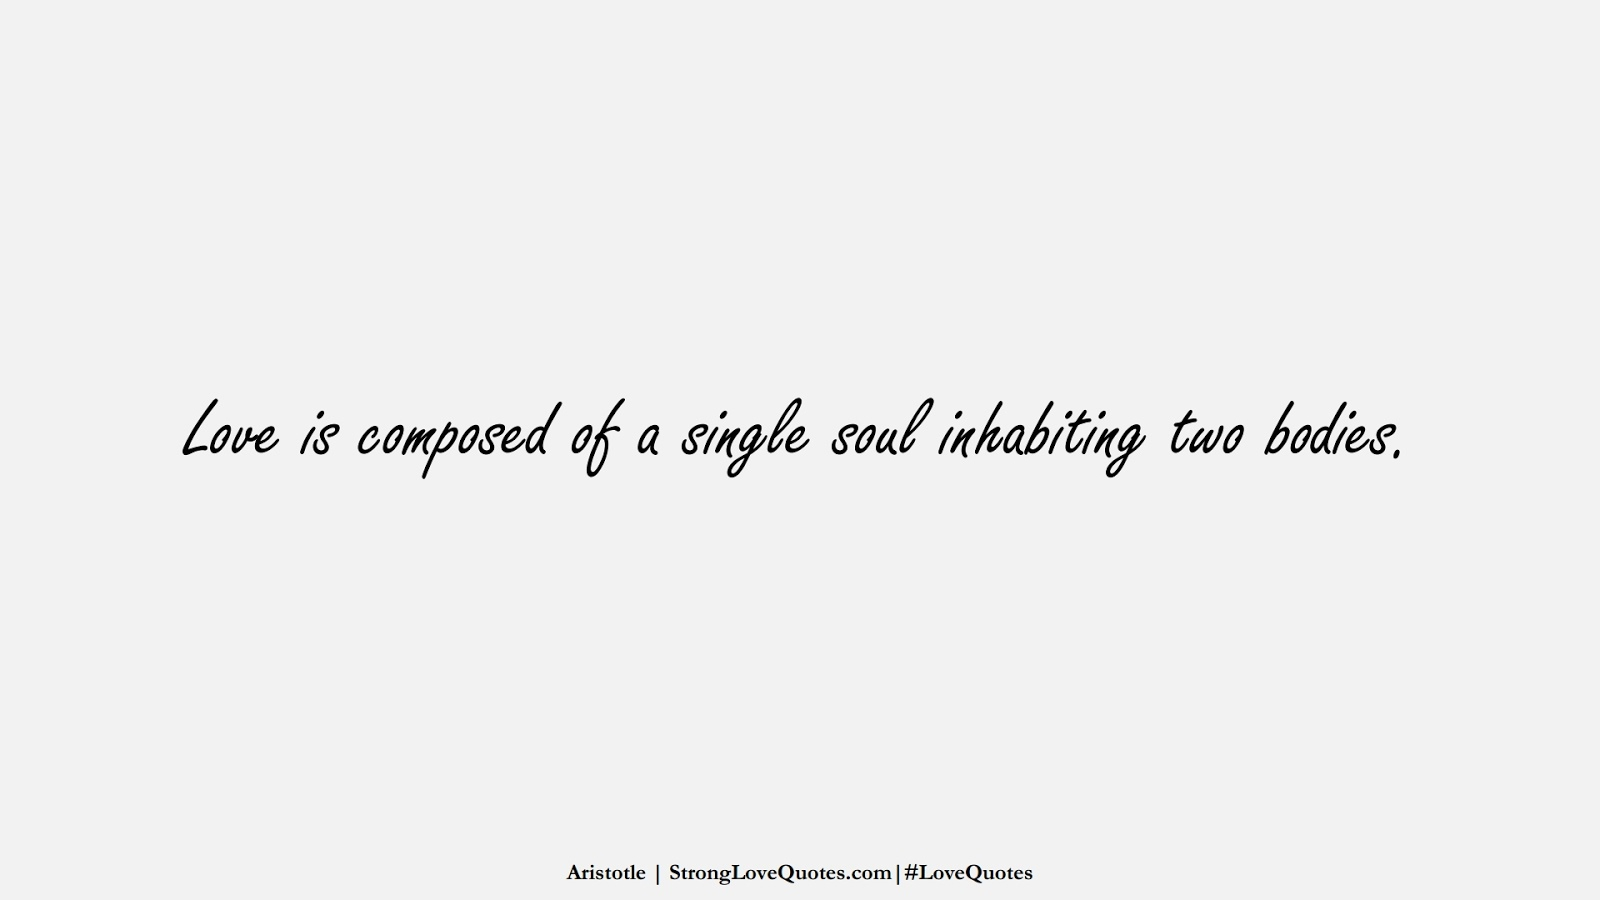 Love is composed of a single soul inhabiting two bodies. (Aristotle);  #LoveQuotes